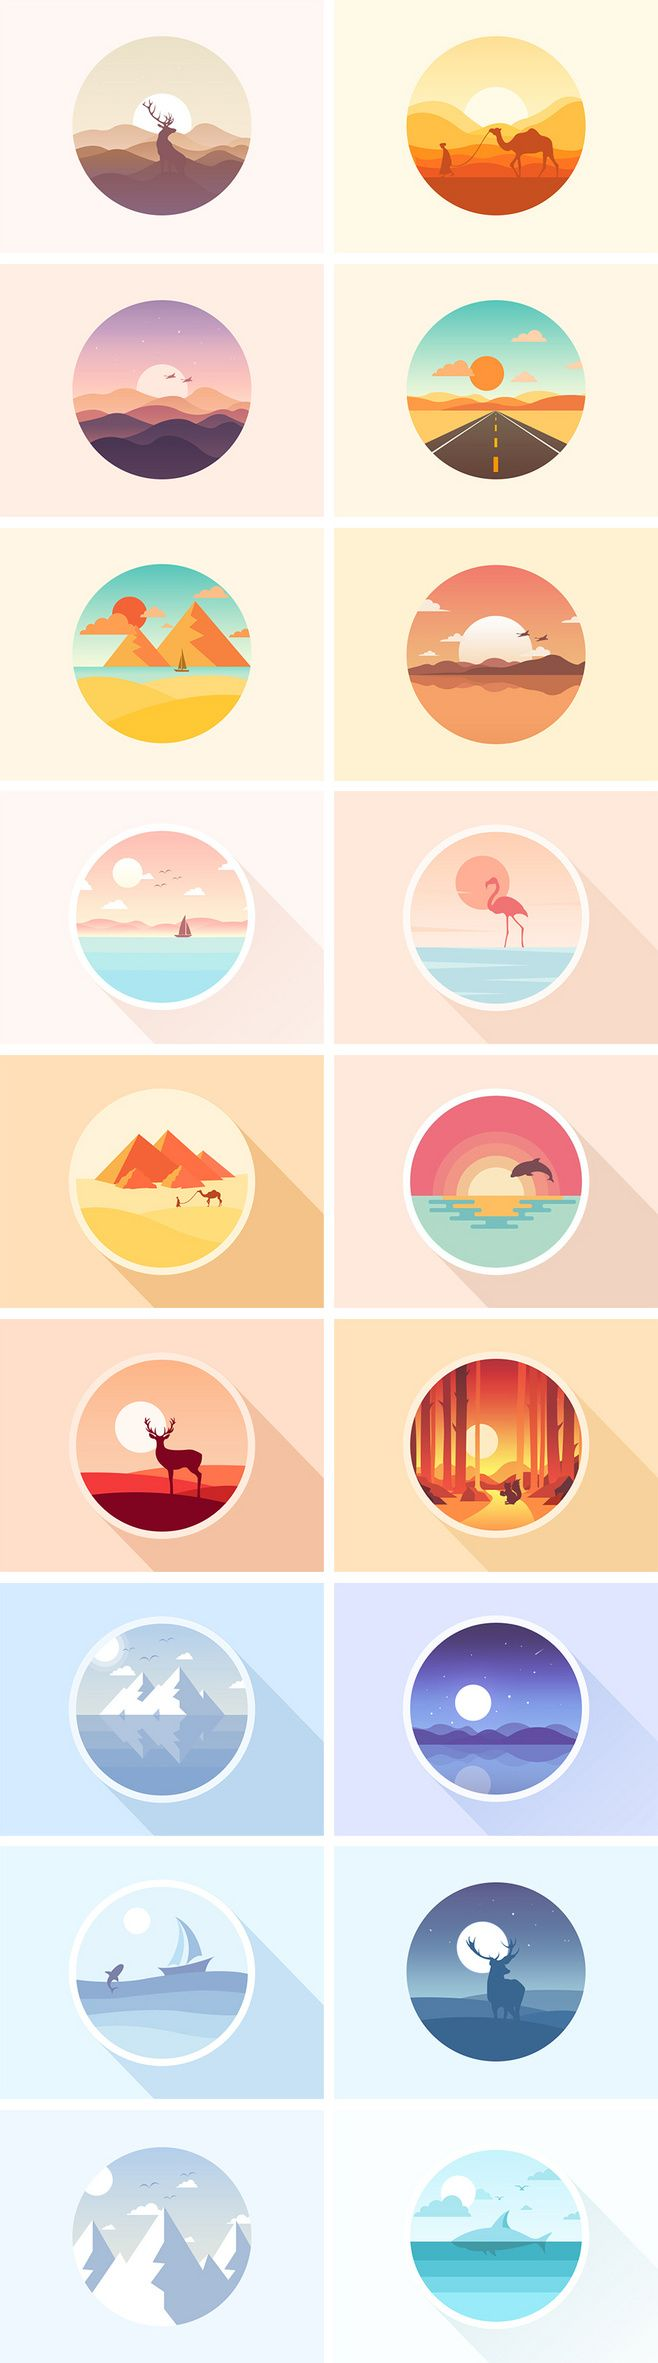 Vector art; nature themed digital illustrations // icon练习作品 @南诺Nanuo 邮箱...